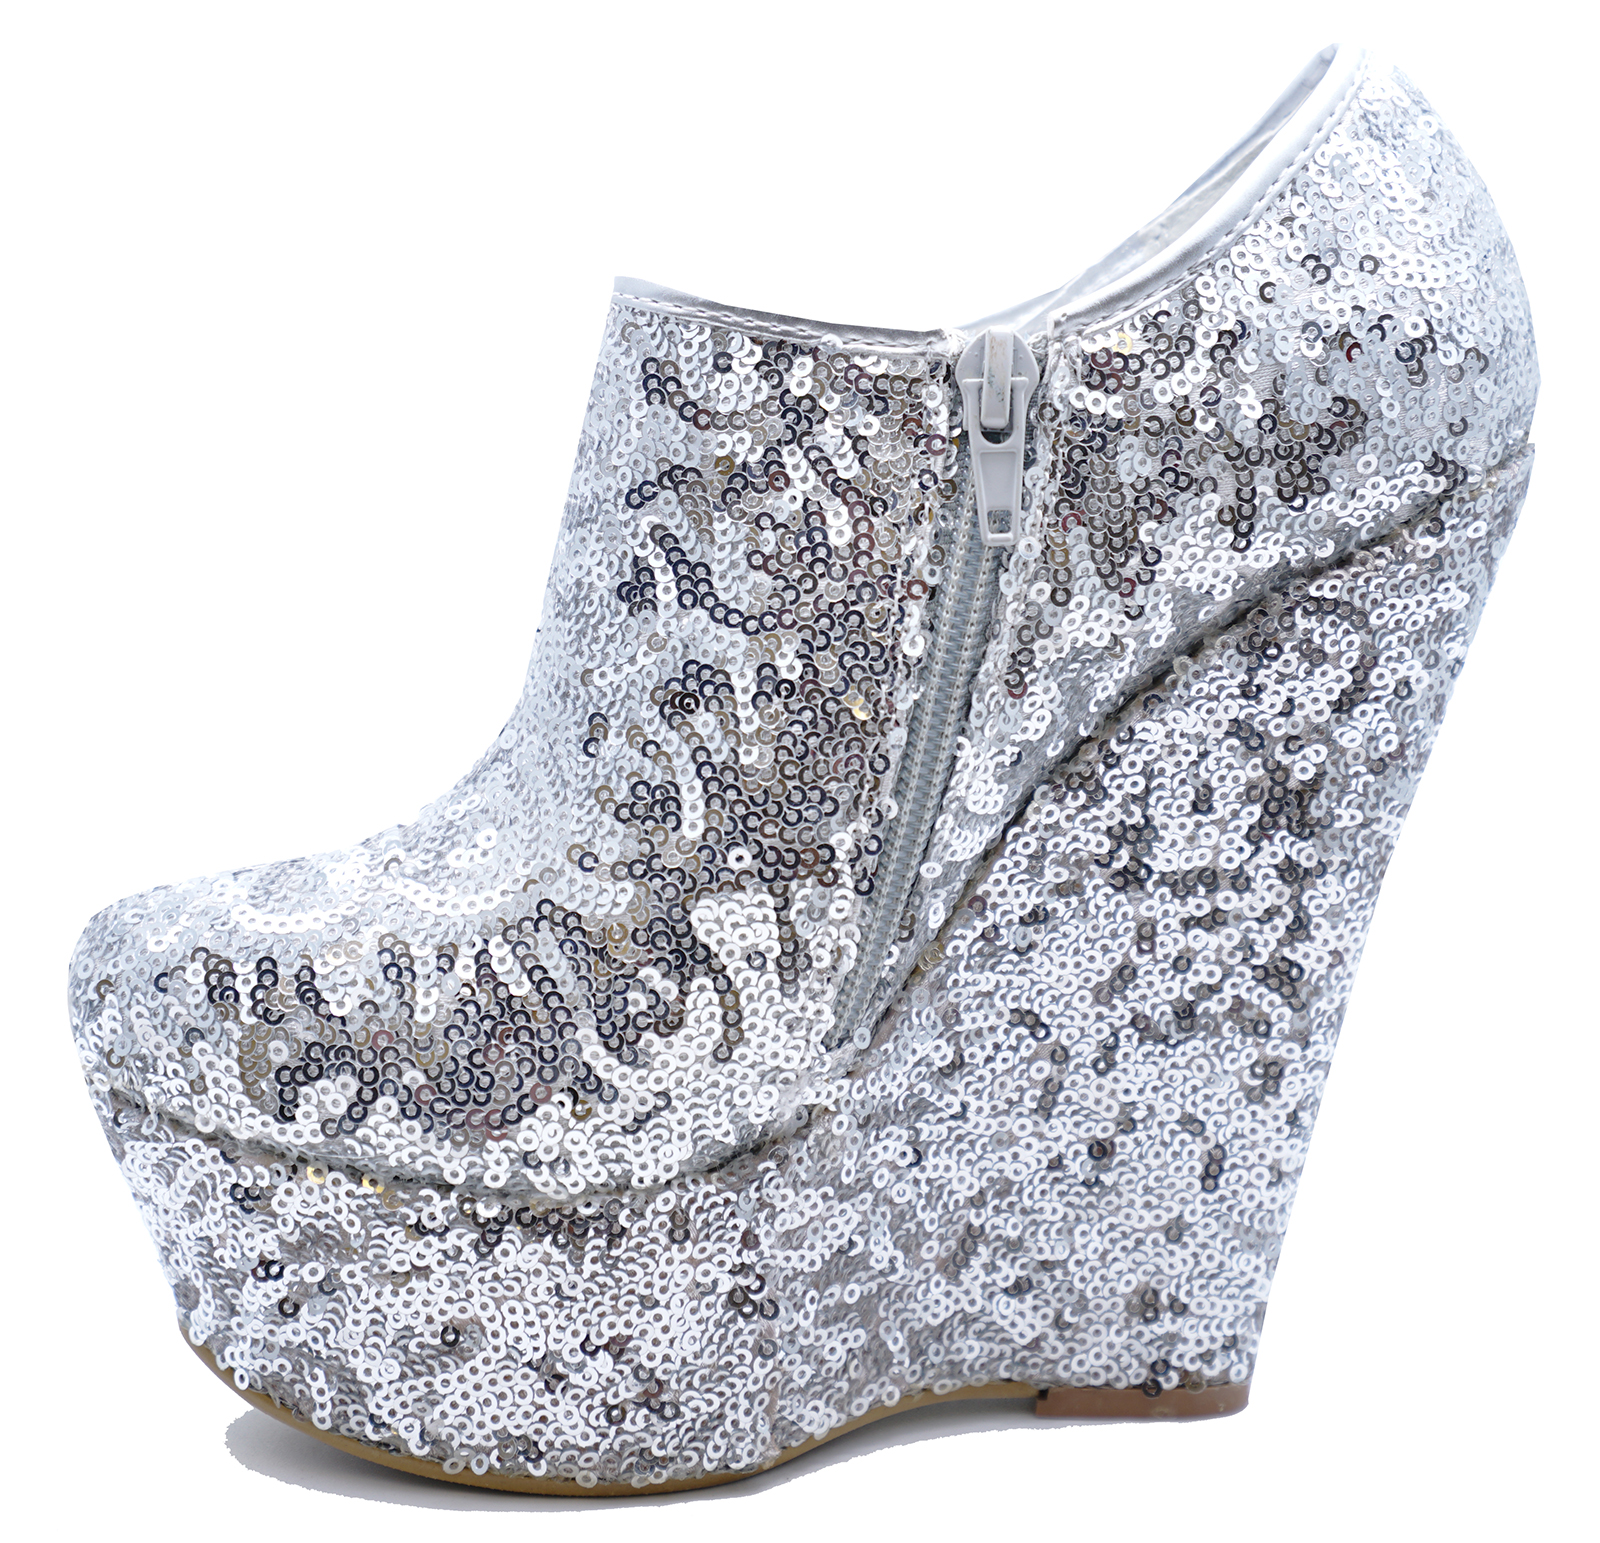 09241a40e16 Sentinel WOMENS SILVER SEQUIN ZIP-UP WEDGE PLATFORM ANKLE CHELSEA BOOTS  SHOES UK 3-8